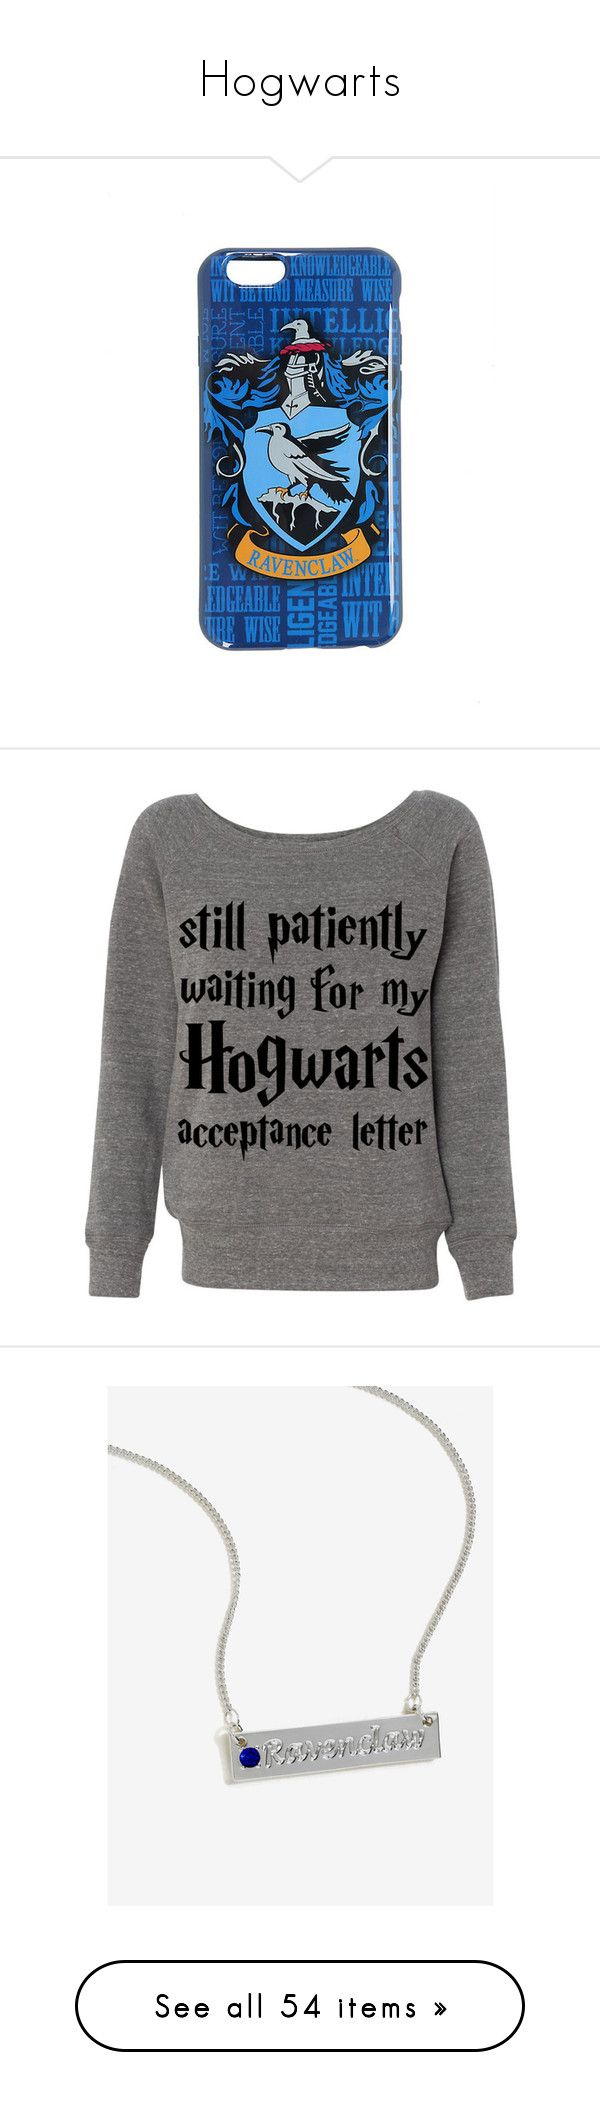 """Hogwarts"" by puppylover32203 ❤ liked on Polyvore featuring harry potter, phone cases, ravenclaw, phone, tops, shirts, sweaters, sweatshirts, initial shirts and slouchy tops"